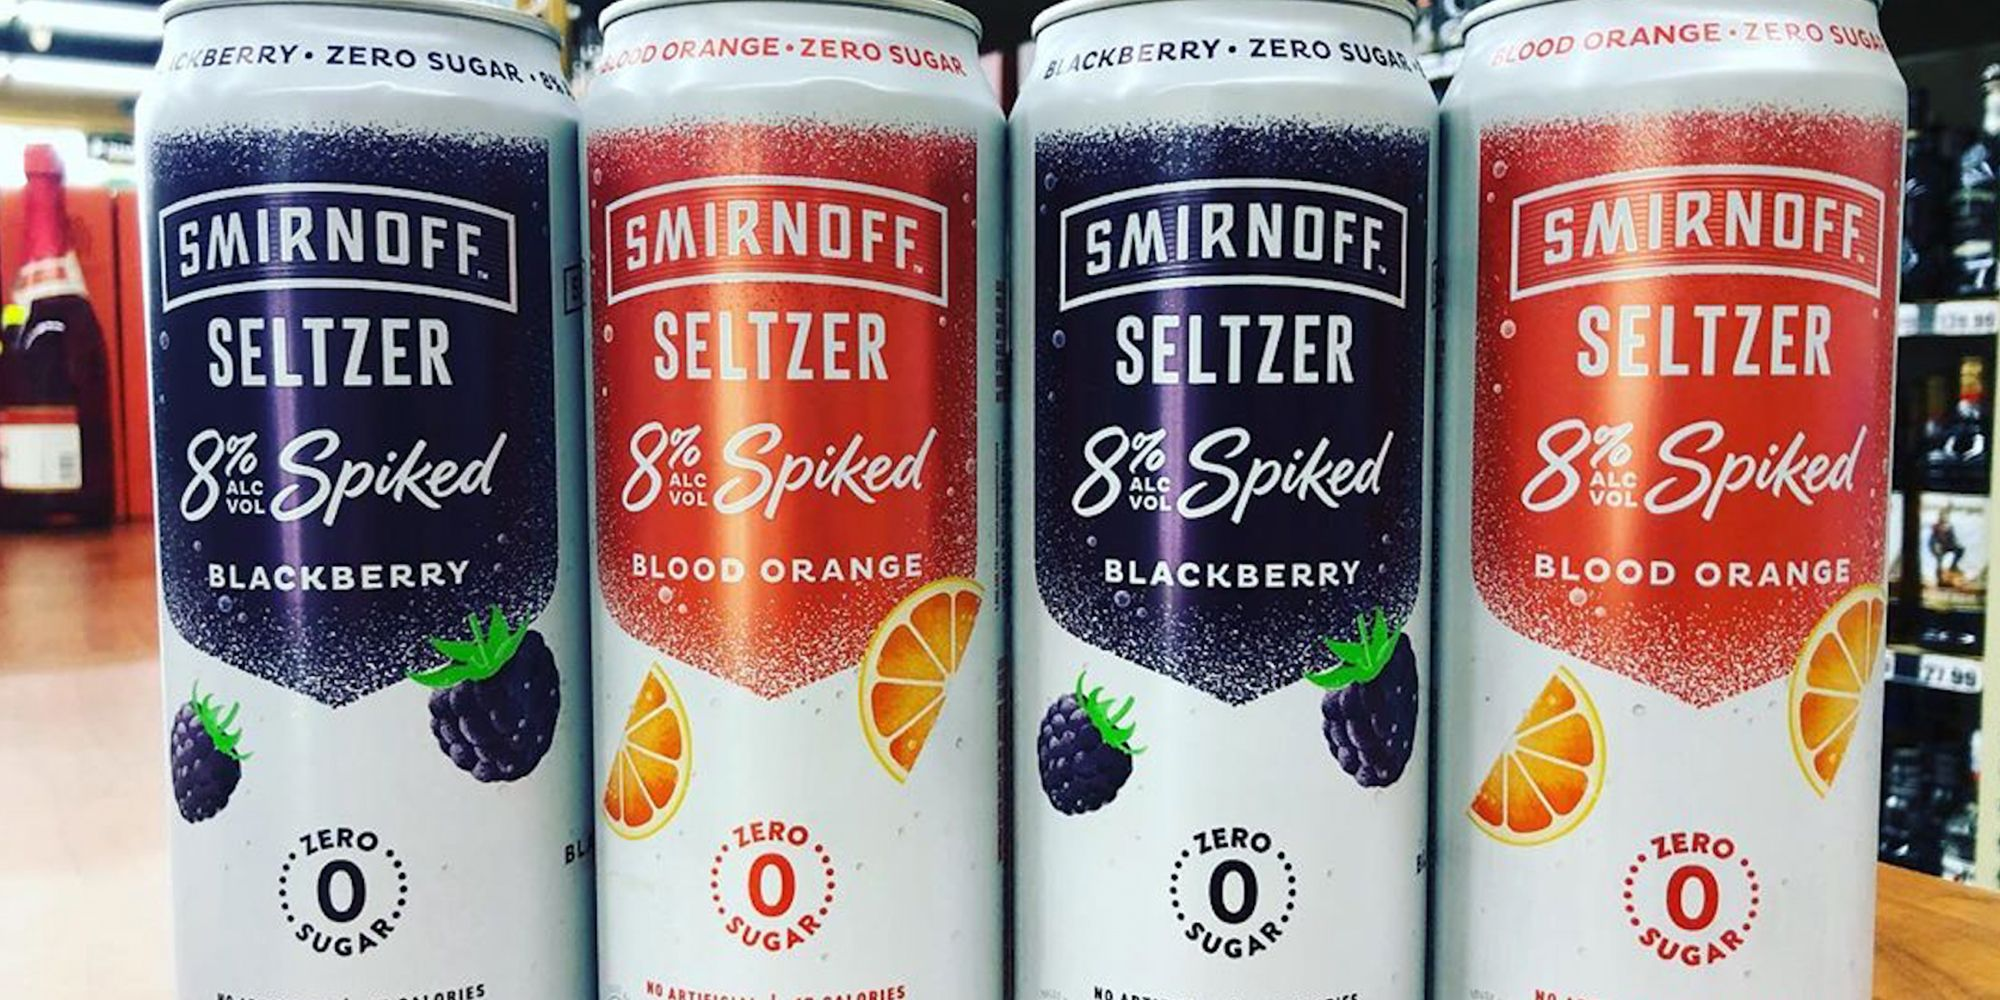 Smirnoff Has a New Hard Seltzer That Has Nearly Double The Alcohol As The Original